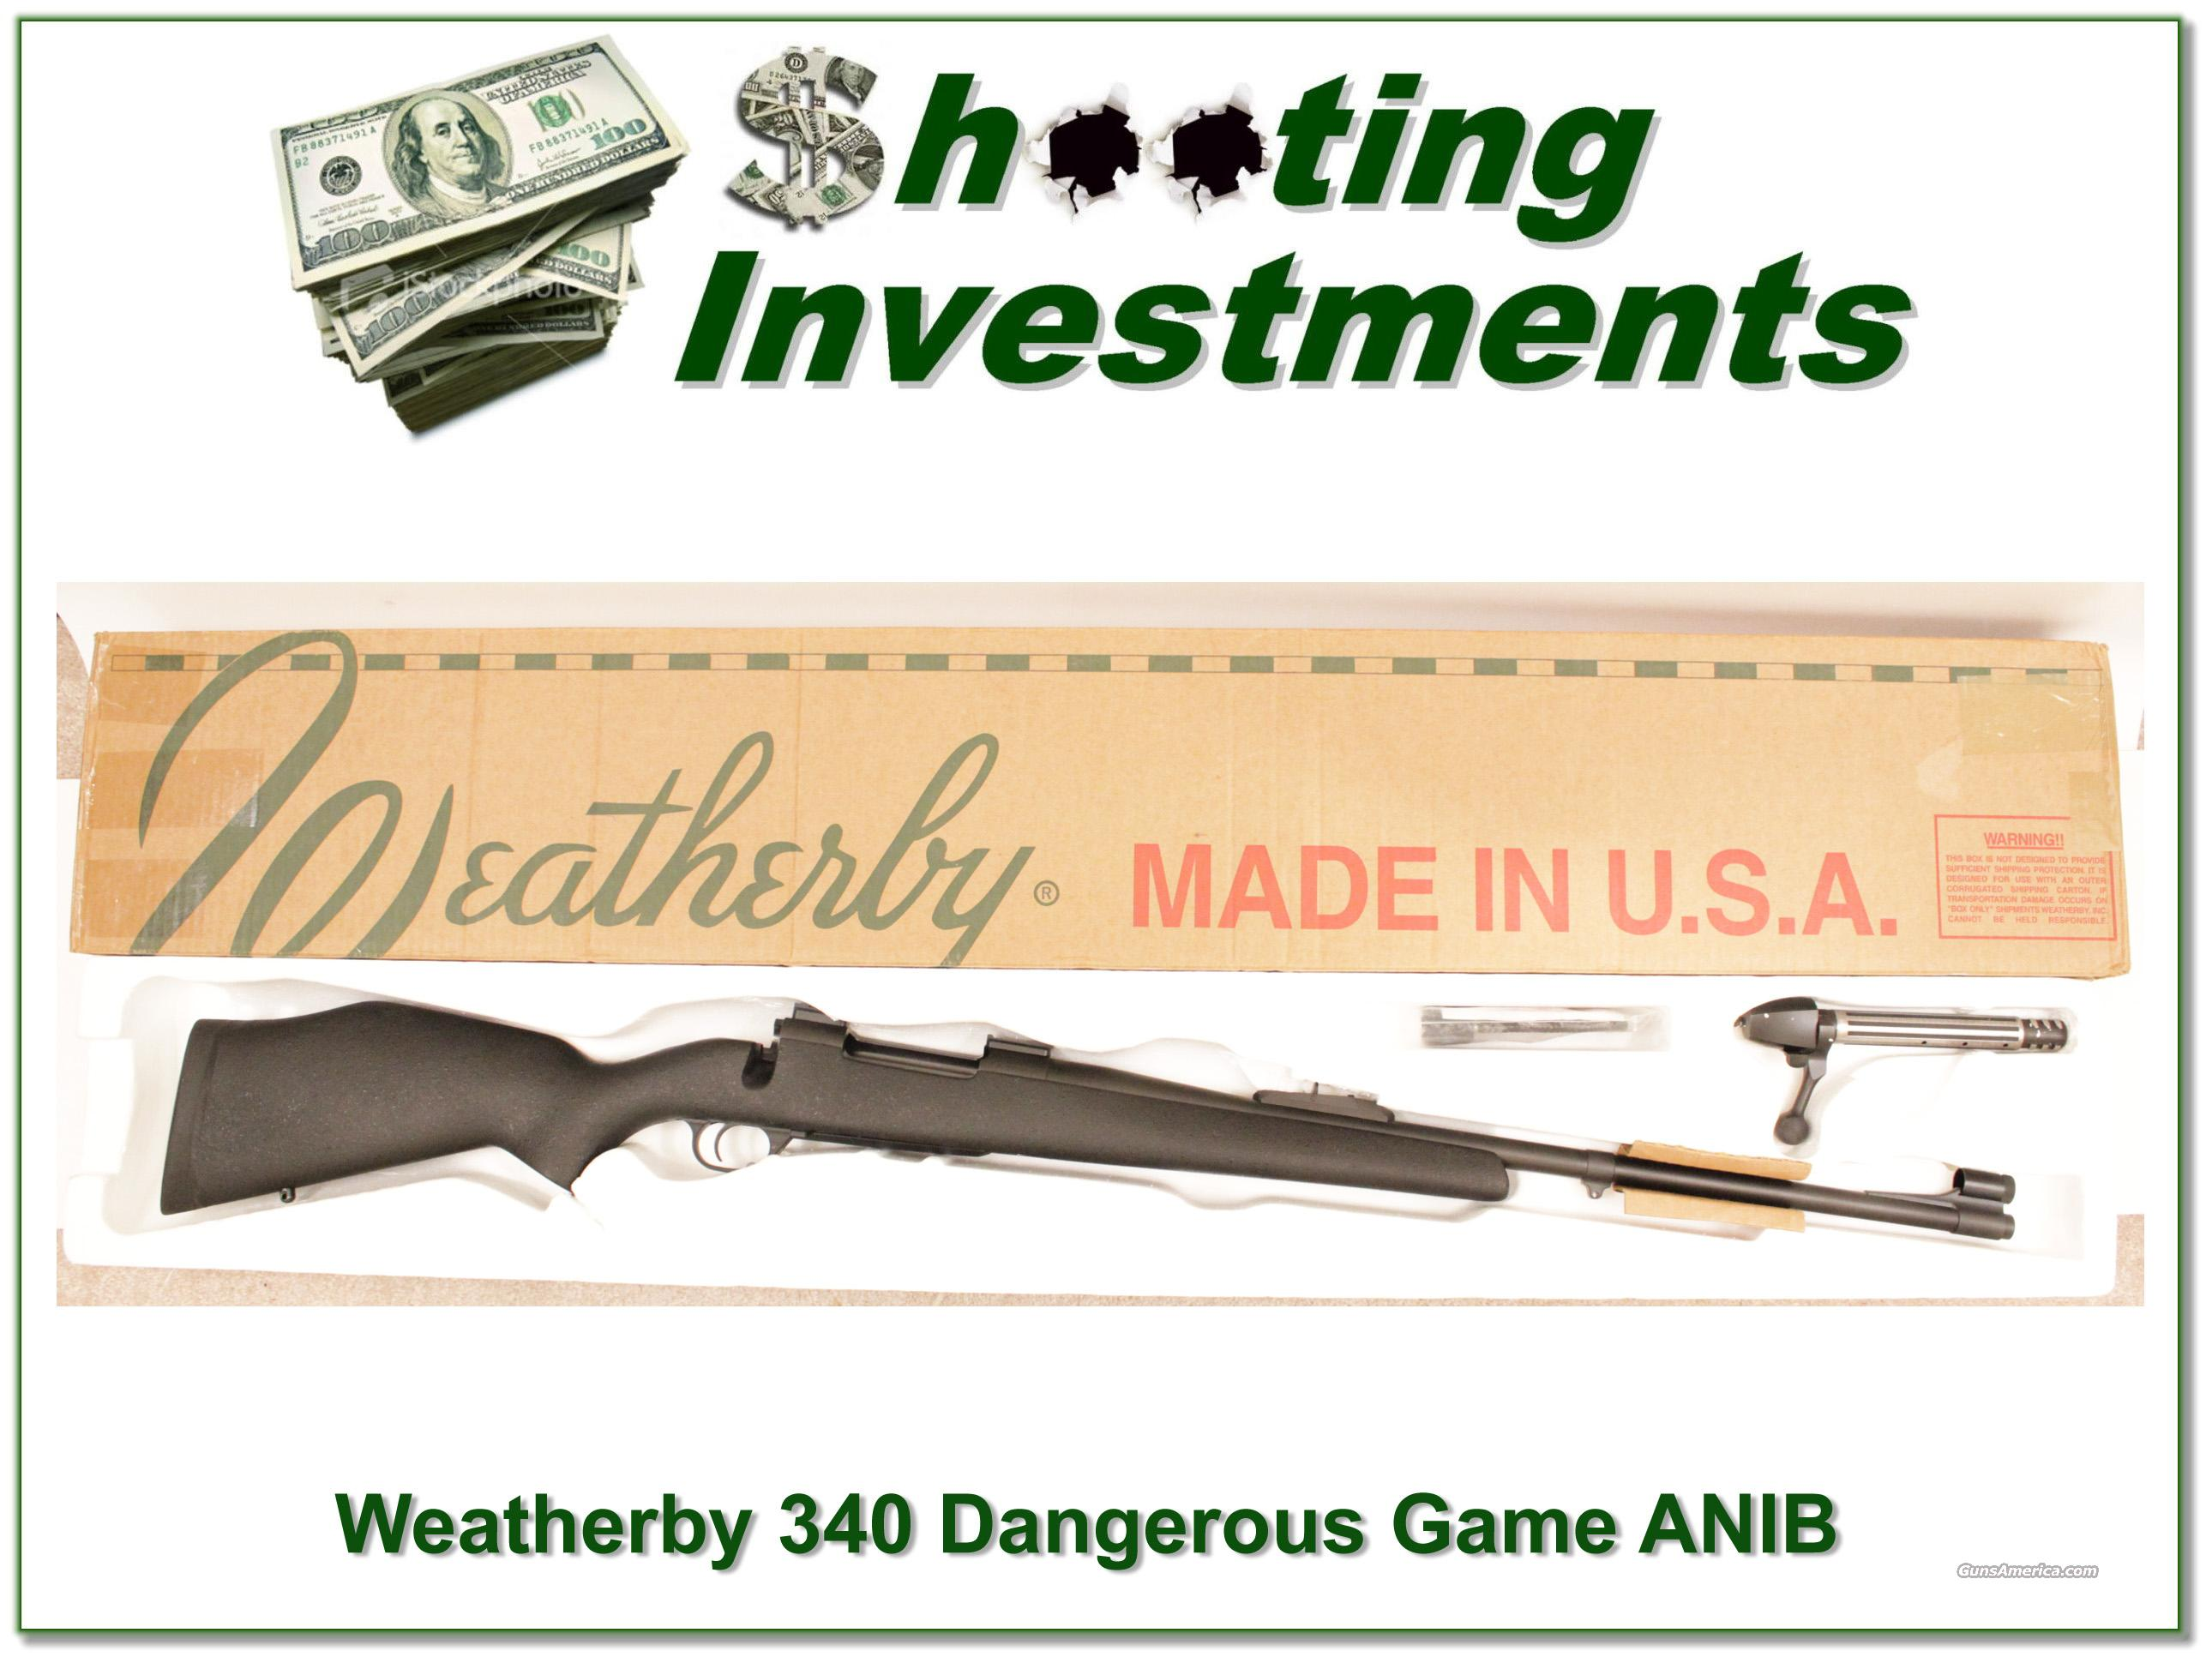 Weatherby Mark V 340 Custom Shop Dangerous Game Rifle!  Guns > Rifles > Weatherby Rifles > Sporting